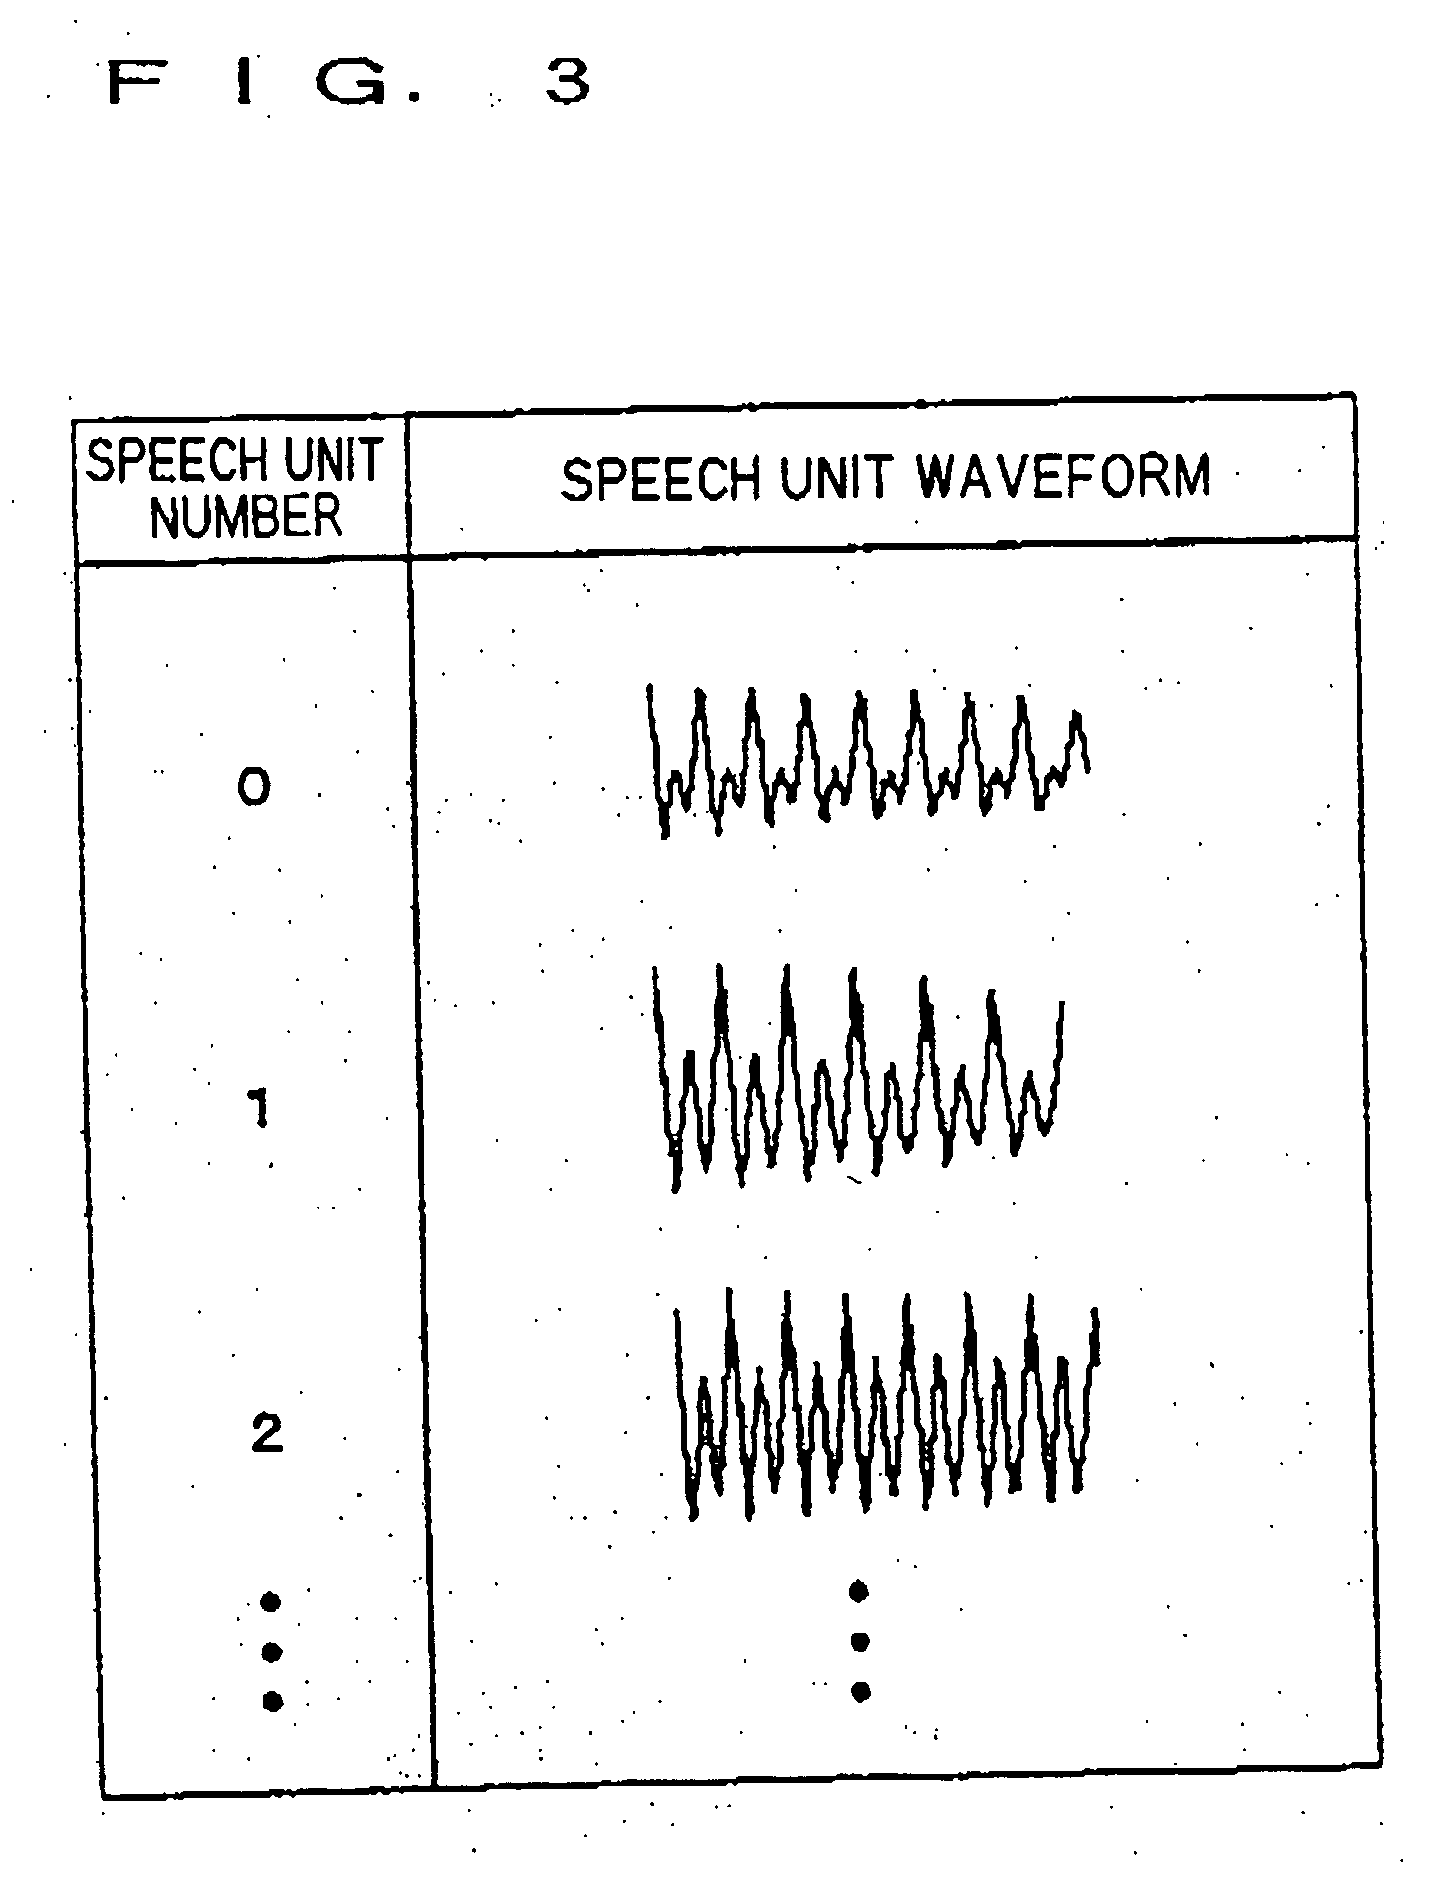 speech synthesis Primitive speech synthesis devices sound robotic a robotic voice is produced by a primitive speech synthesis device this is circular the popular idea of what a robot's voice sounds like comes from early attempts at speech synthesis.